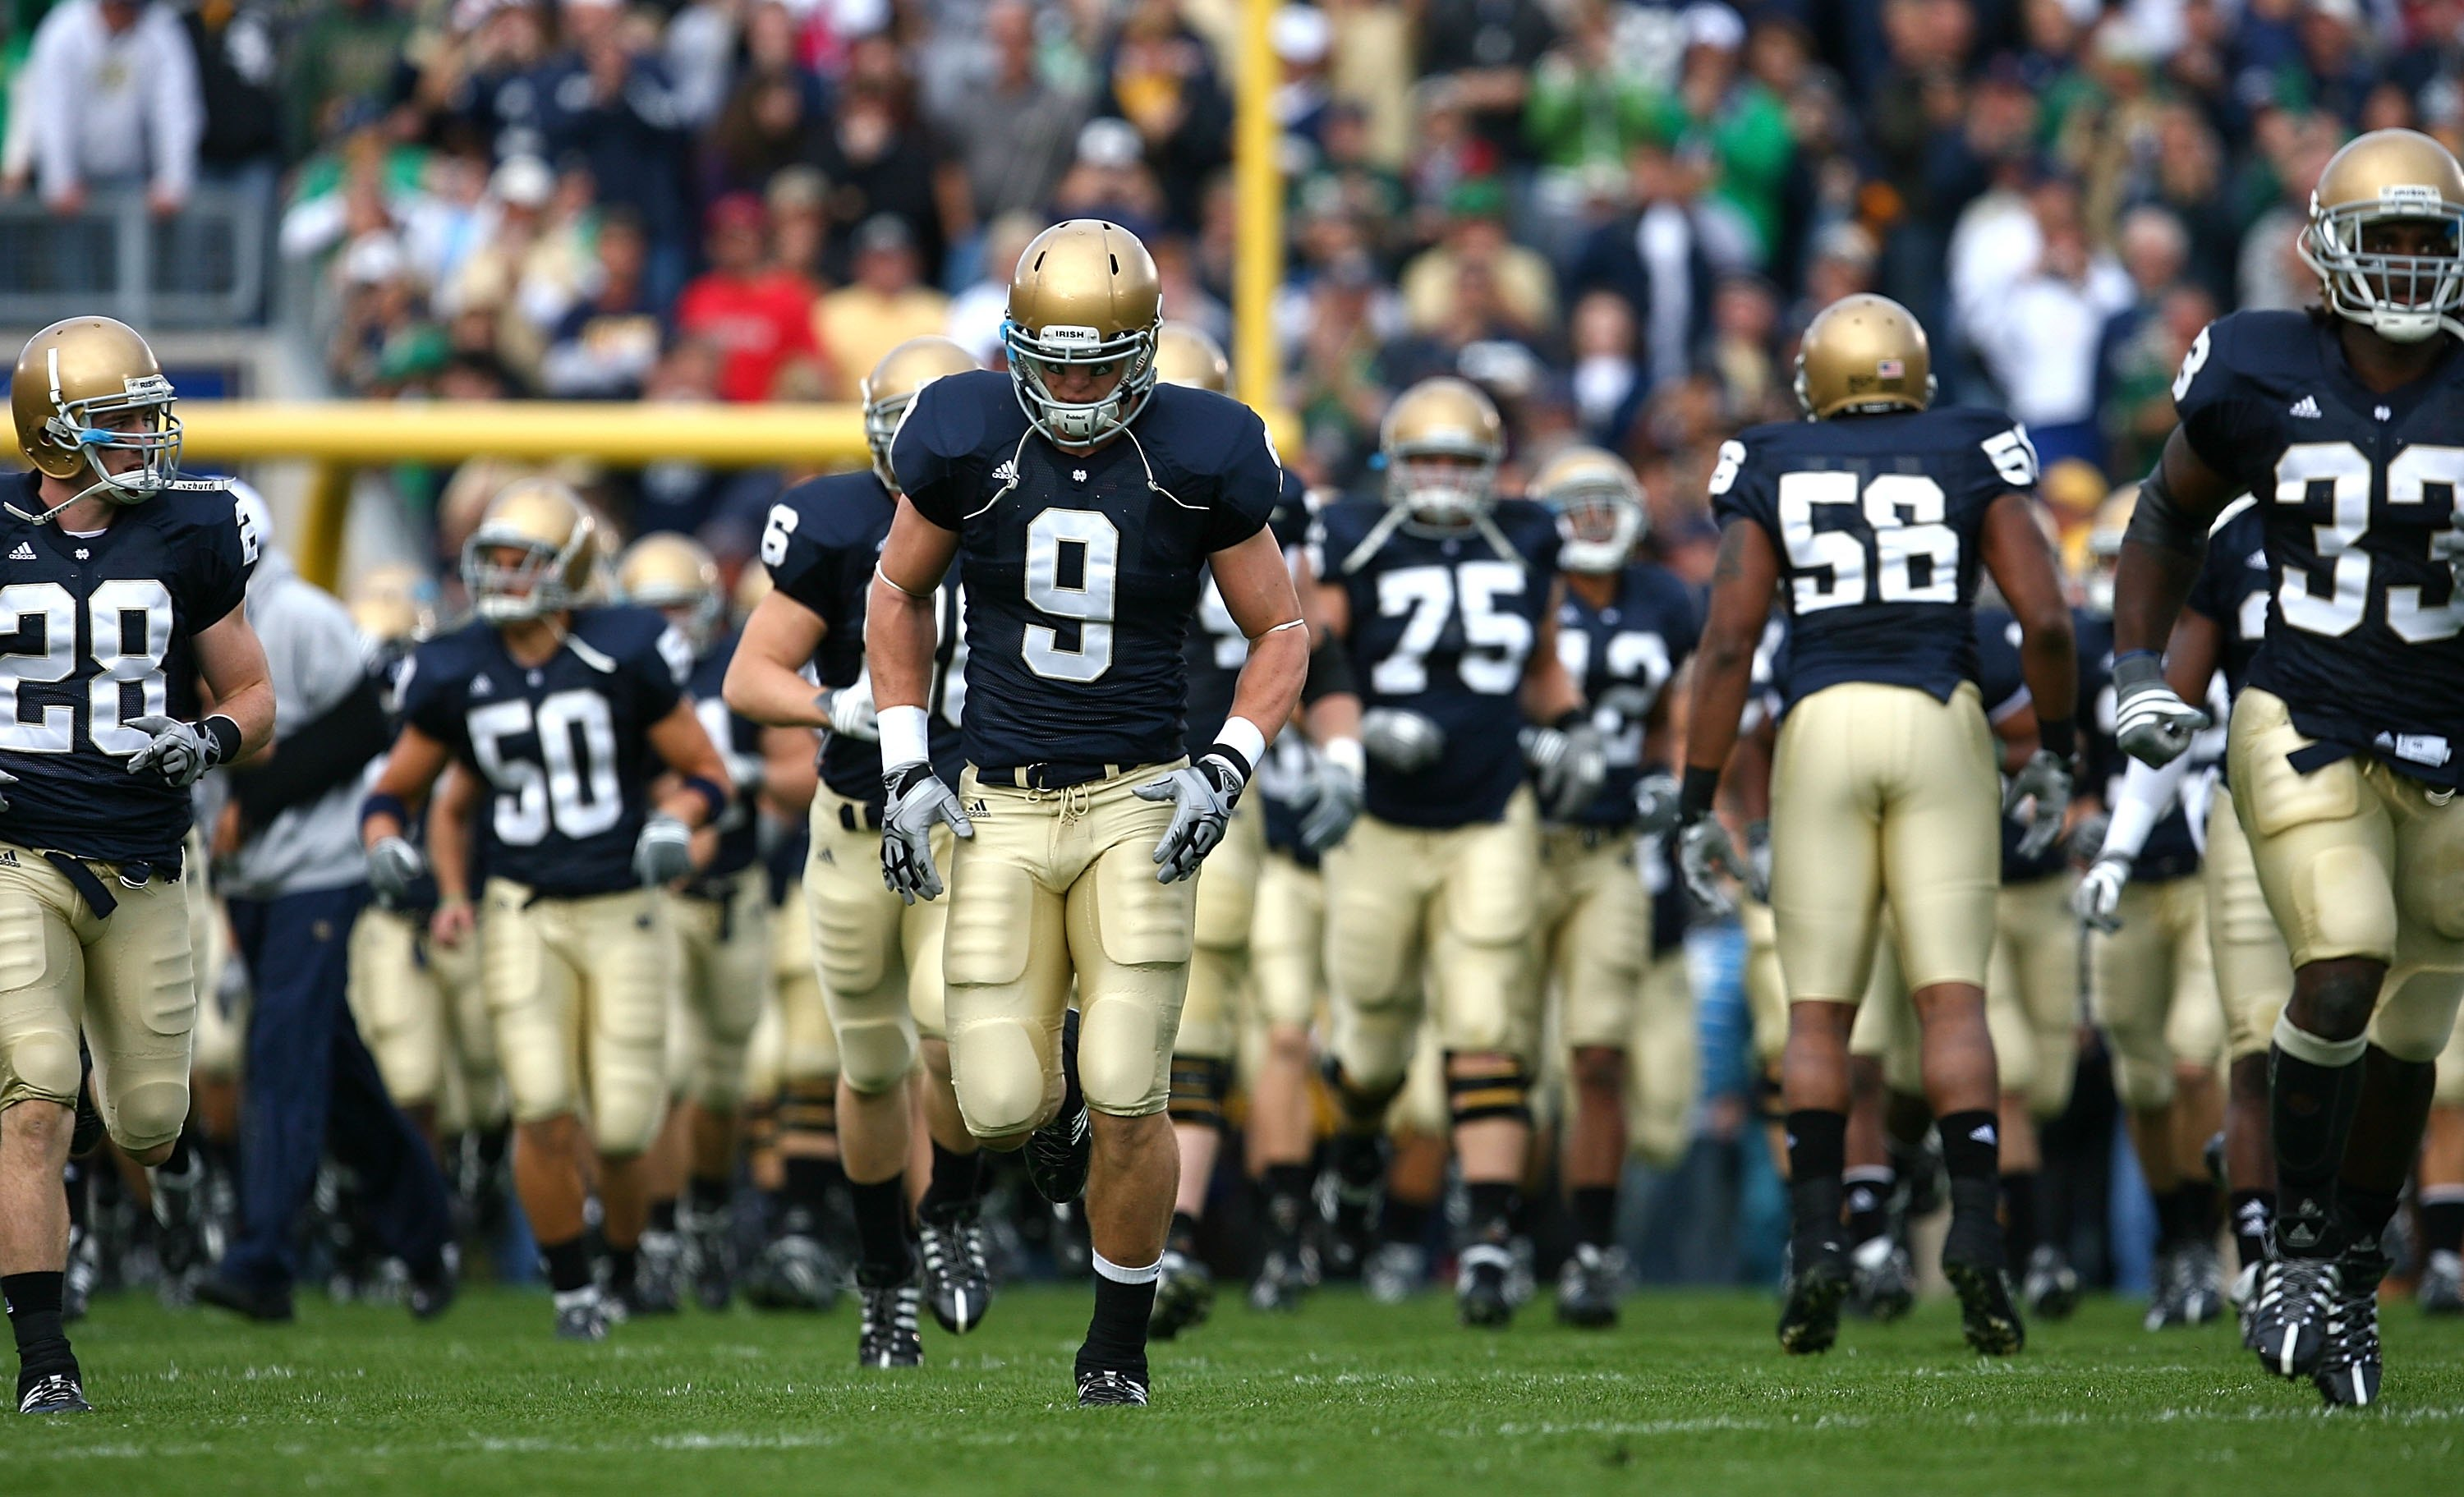 SOUTH BEND, IN - OCTOBER 03: Kyle Rudolph #9 of the Notre Dame Fighting Irish runs onto the field with teammates before a game against the Washington Huskies on October 3, 2009 at Notre Dame Stadium in South Bend, Indiana. Notre Dame defeated Washington 3